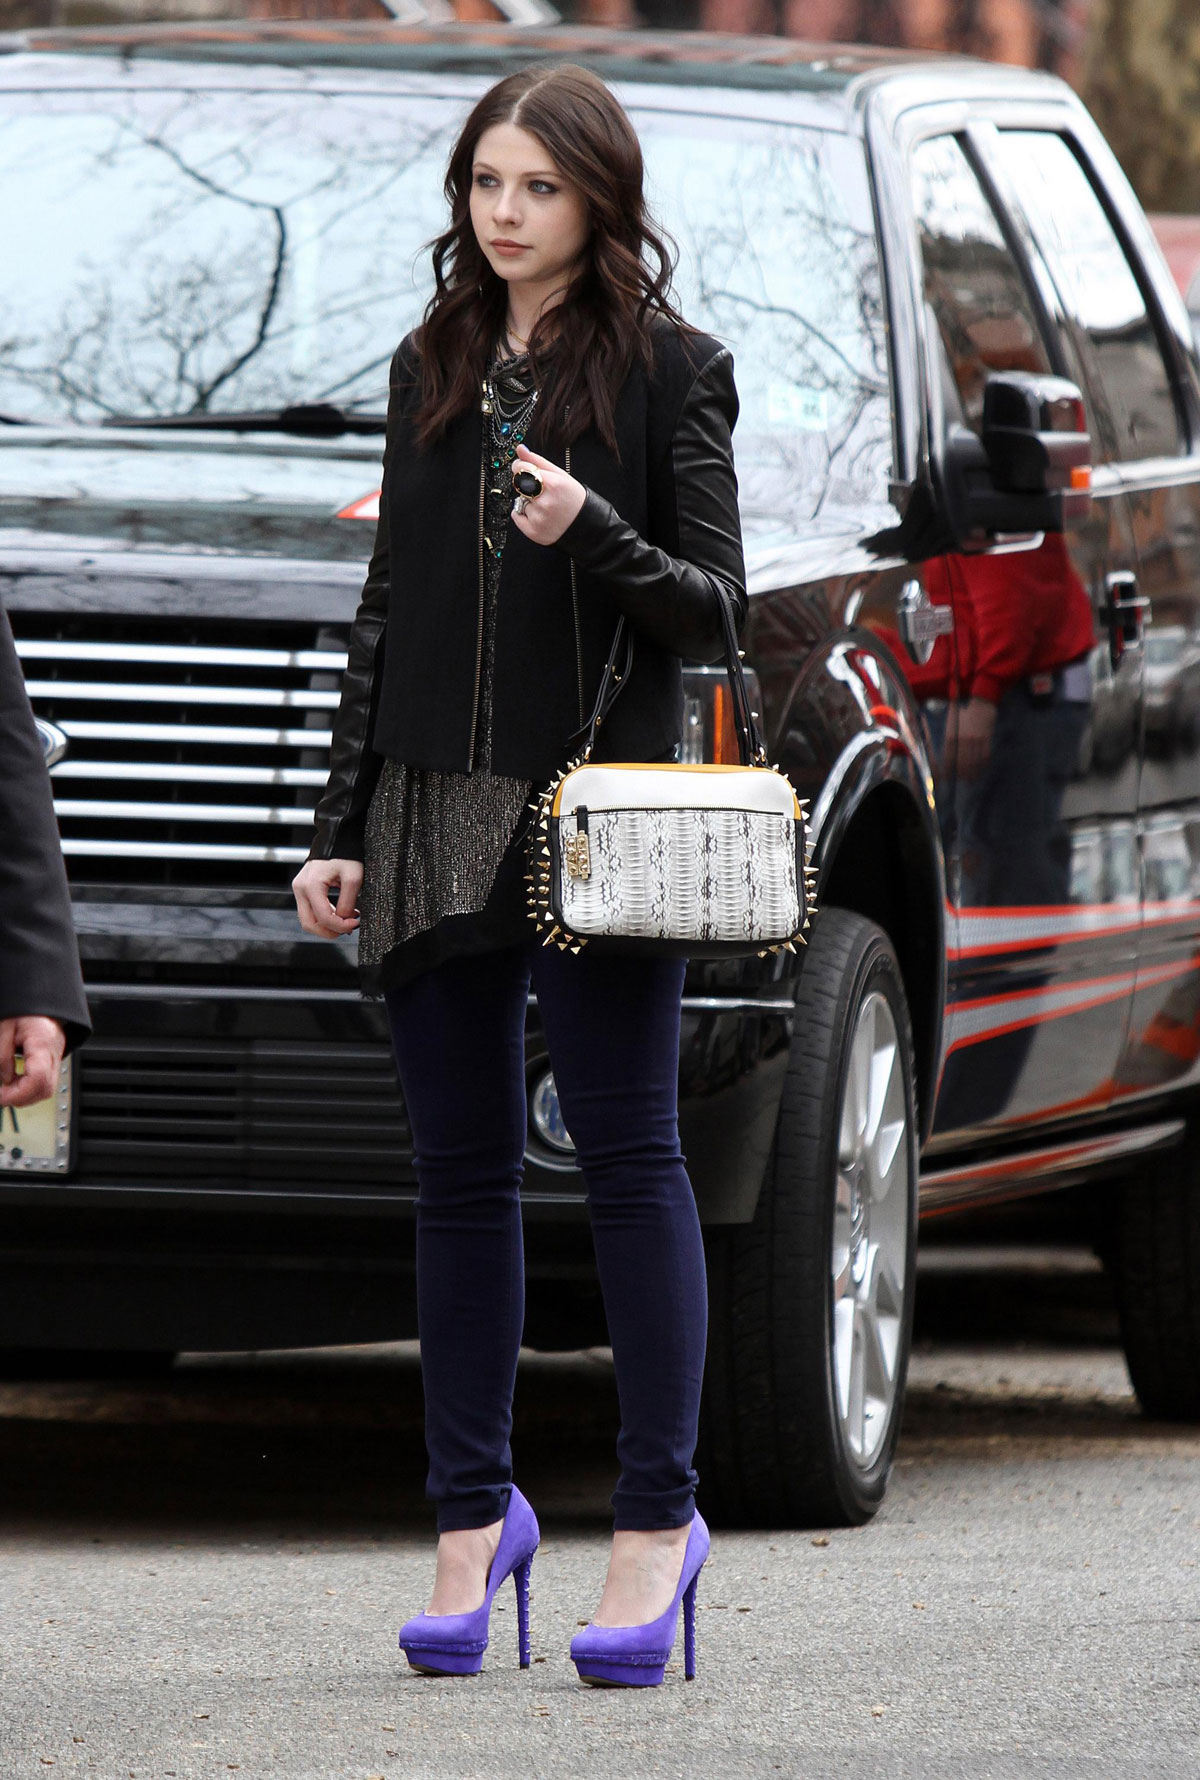 MICHELLE TRACHTENBERG on the Gossip Girl Set in New York 5 michelle trachtenberg on the gossip girl set in new york hawtcelebs